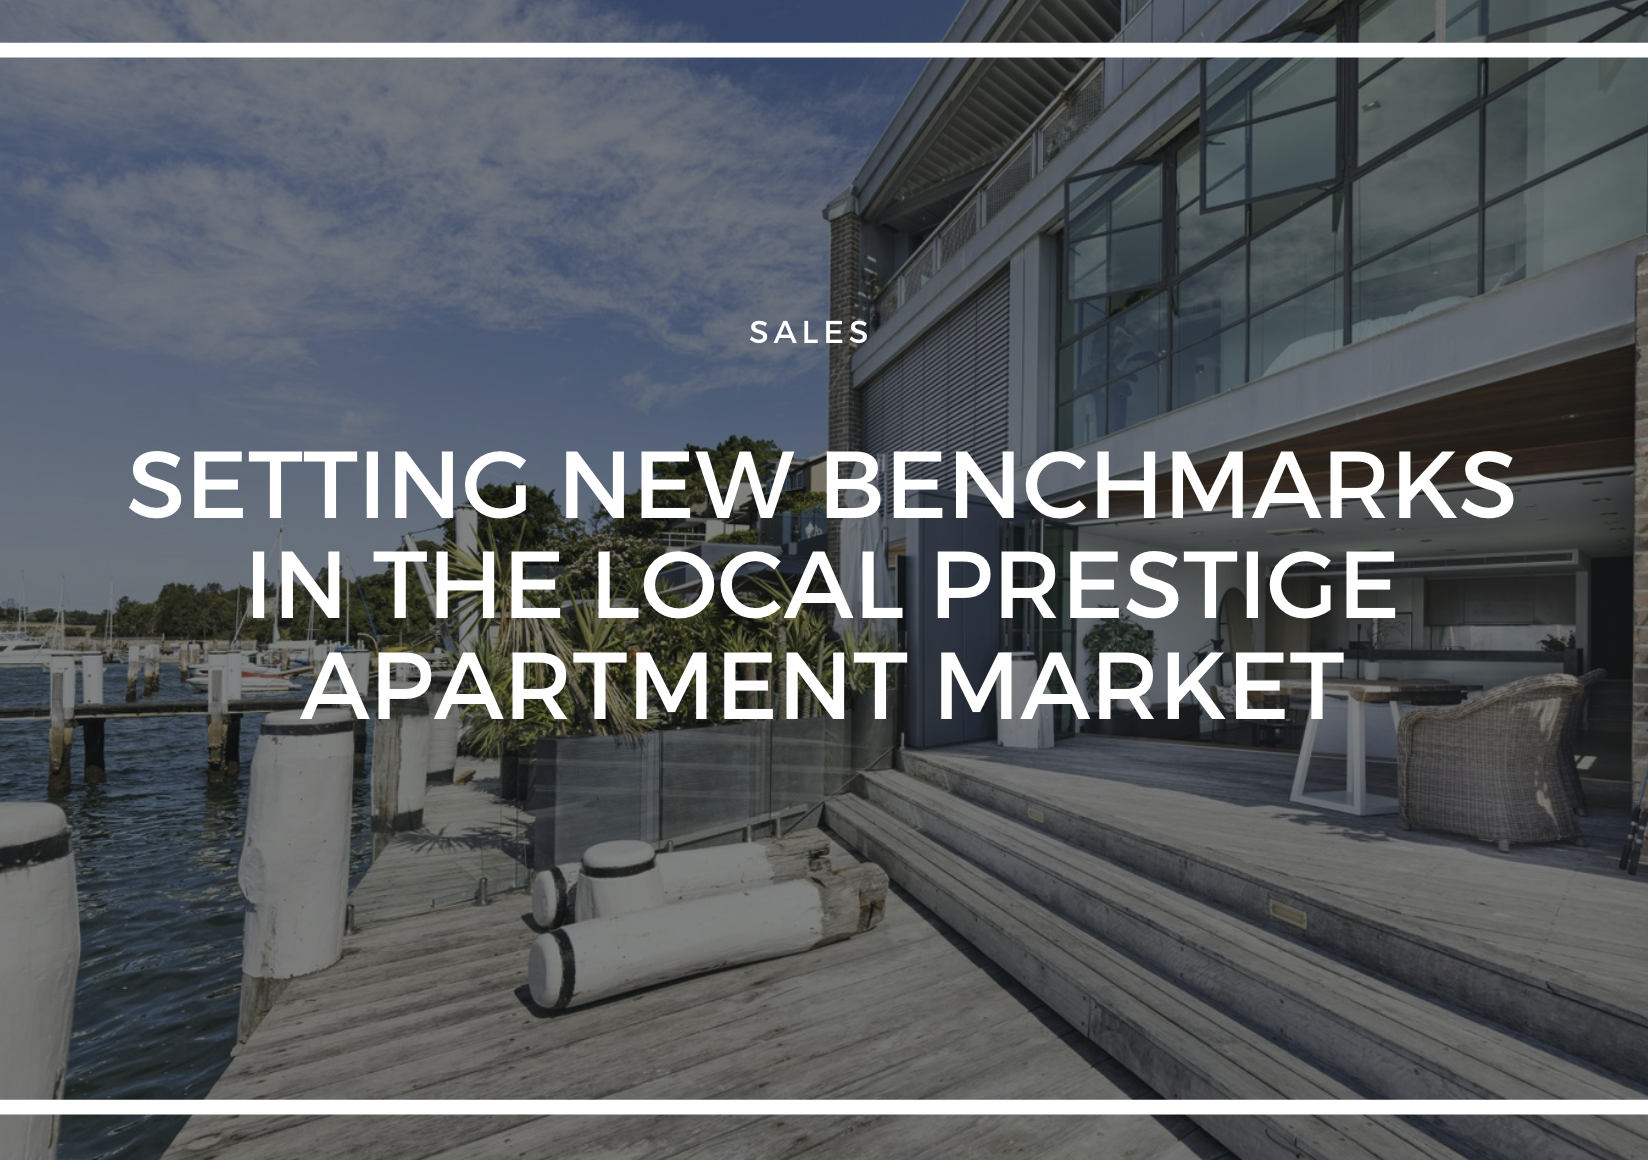 SAMANTHA ELVY AND DANNY COBDEN SETTING NEW BENCHMARKS IN THE LOCAL PRESTIGE APARTMENT MARKET